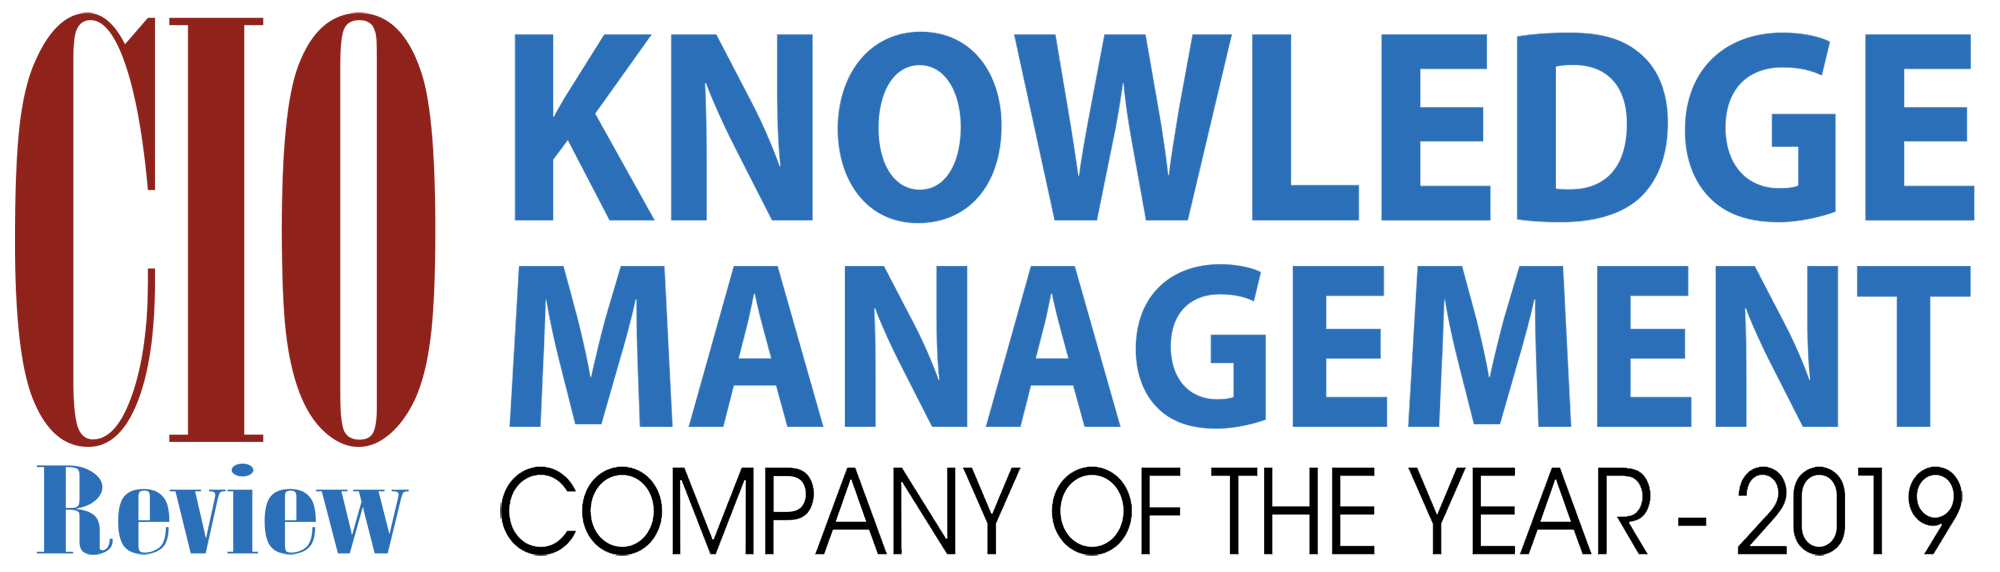 CIOReview Company of the Year 2019